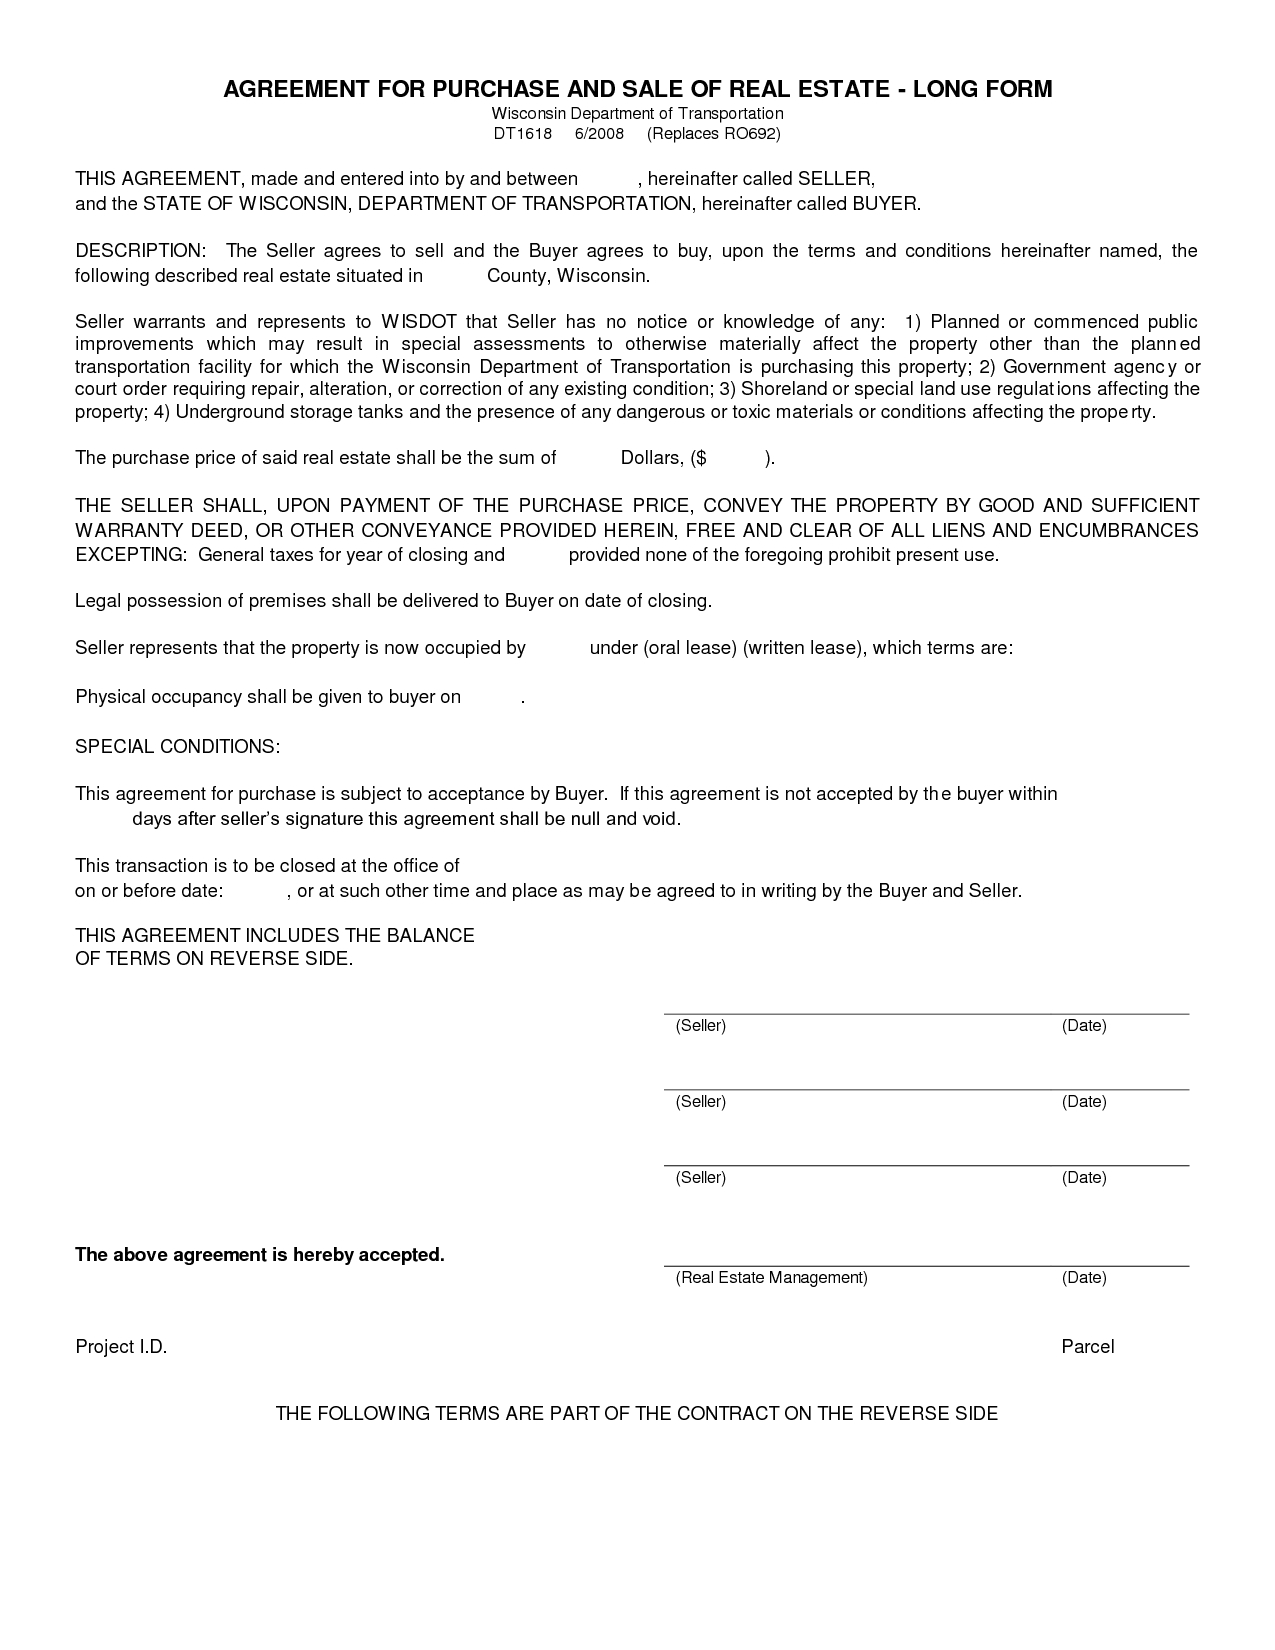 Free Blank Purchase Agreement Form Images - Agreement To Purchase - Free Printable Real Estate Contracts